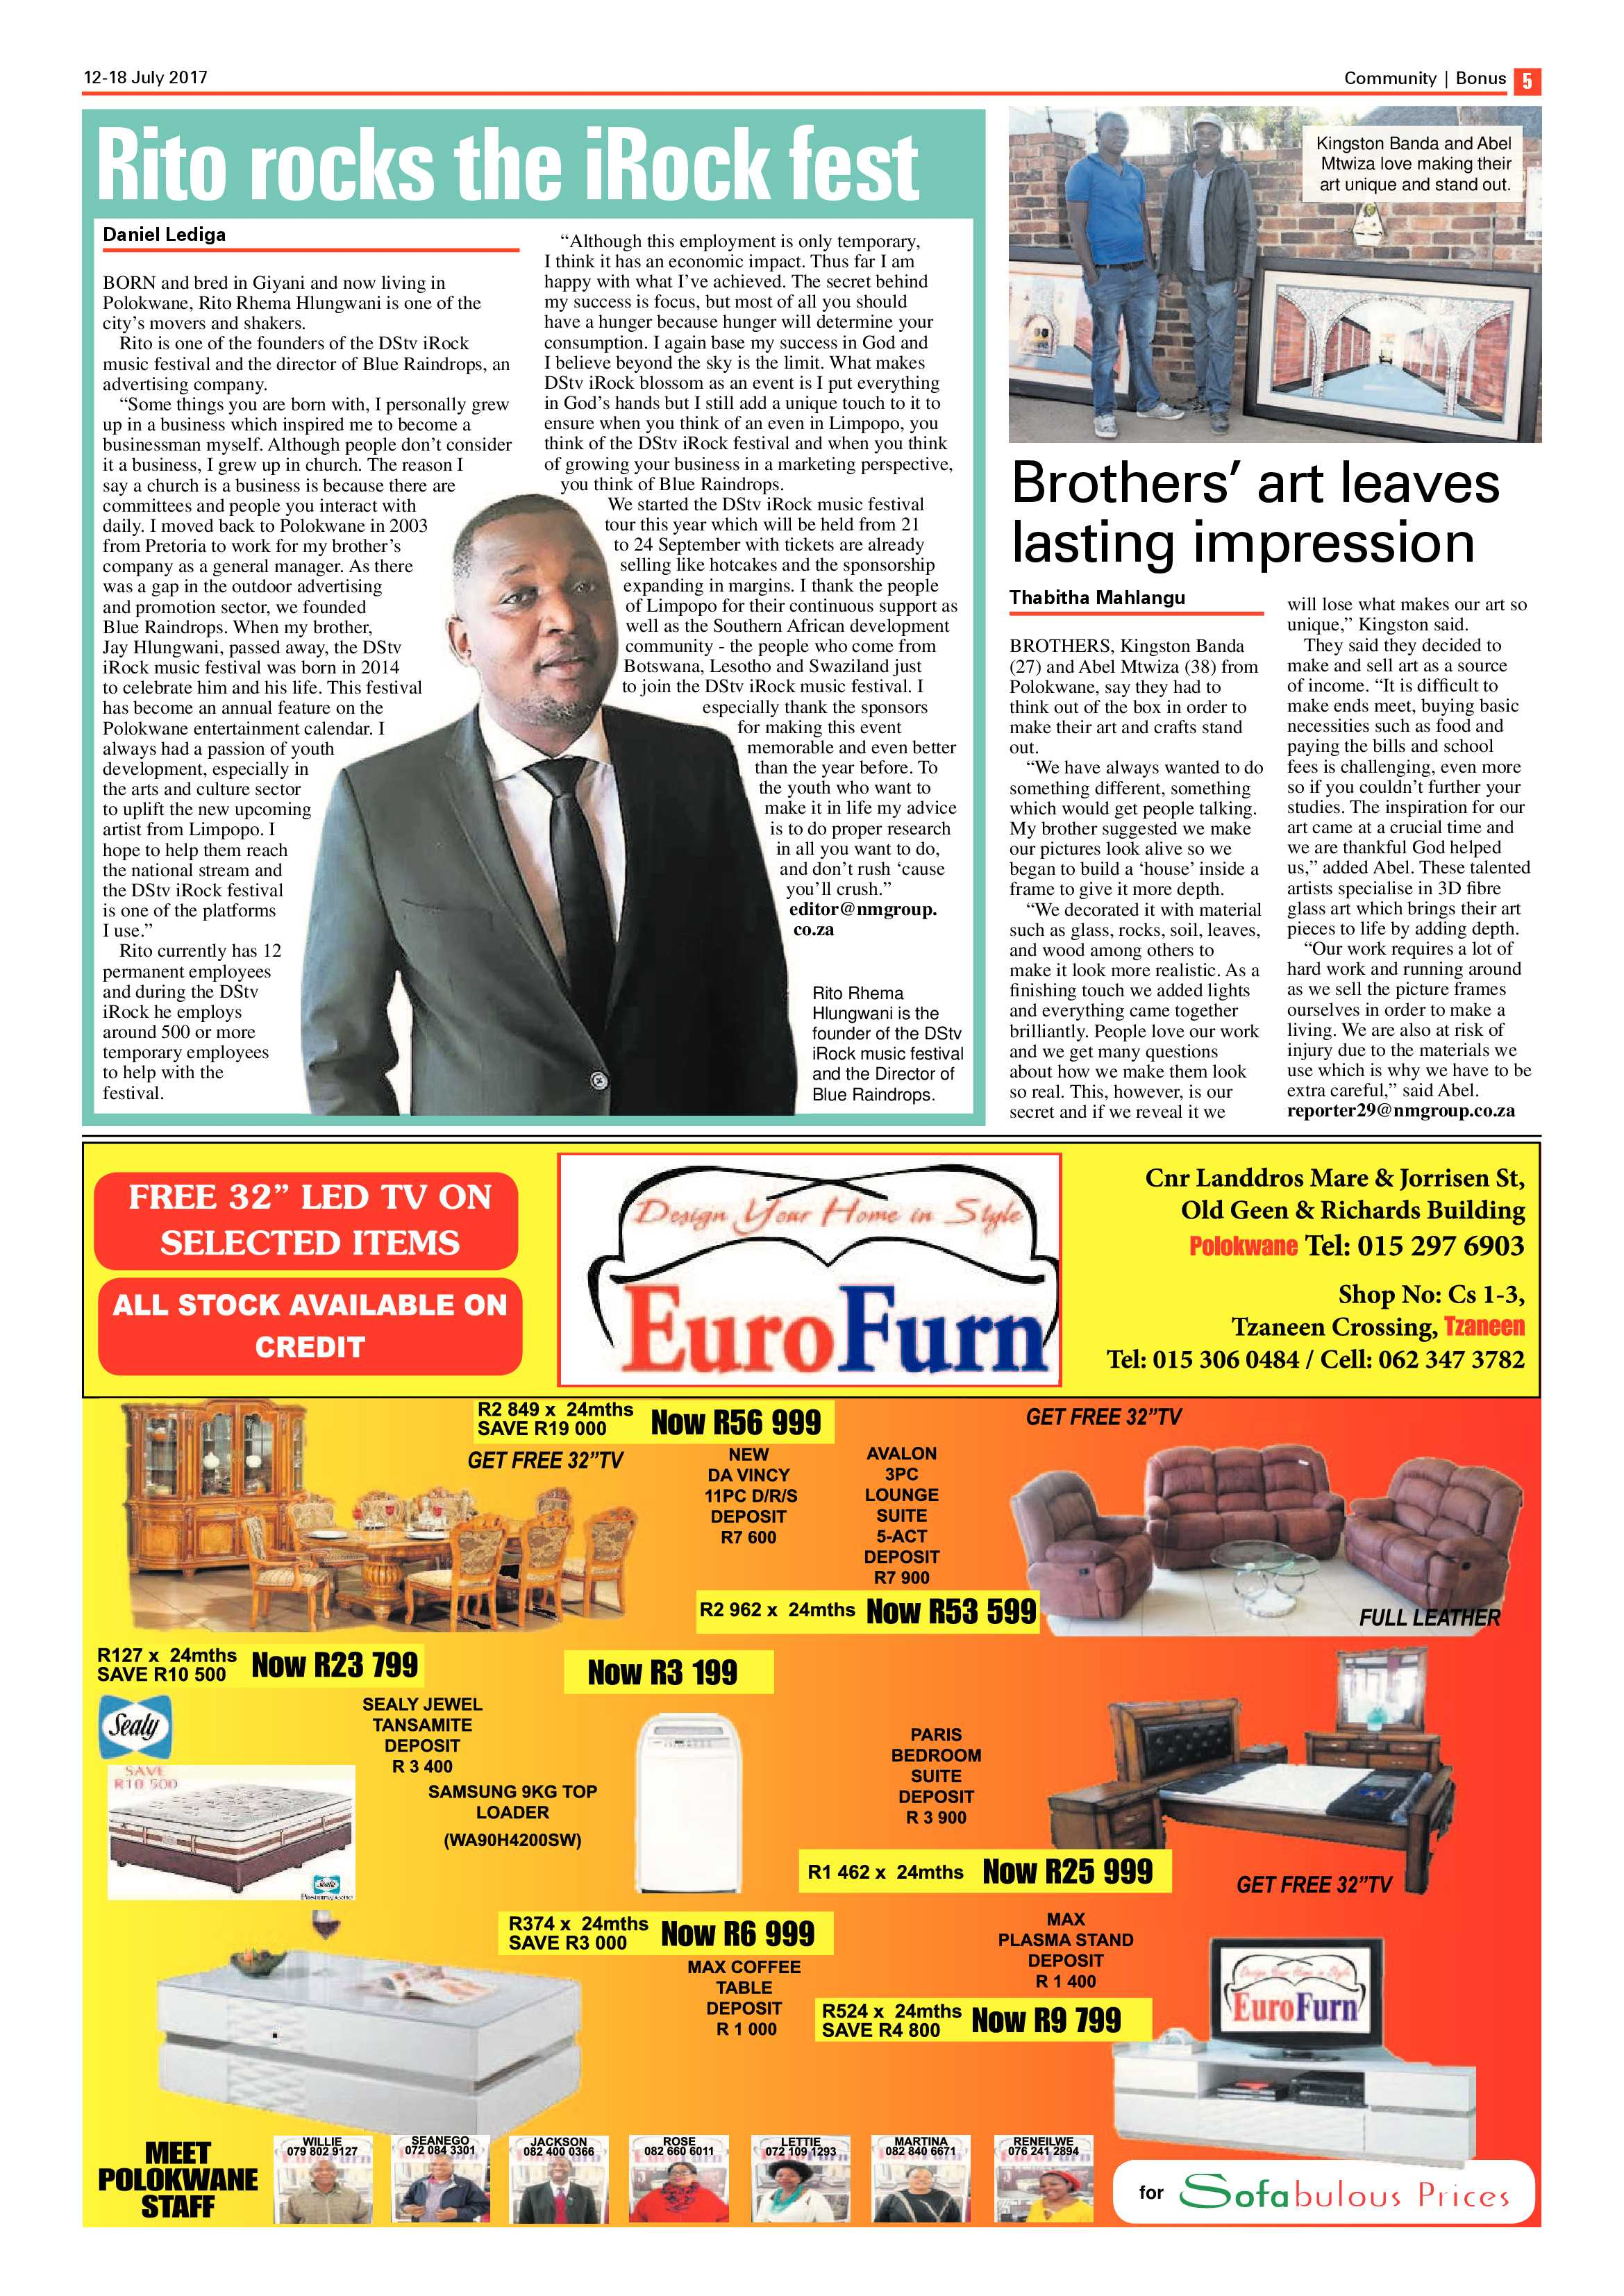 review-bonus-12-july-2017-epapers-page-5